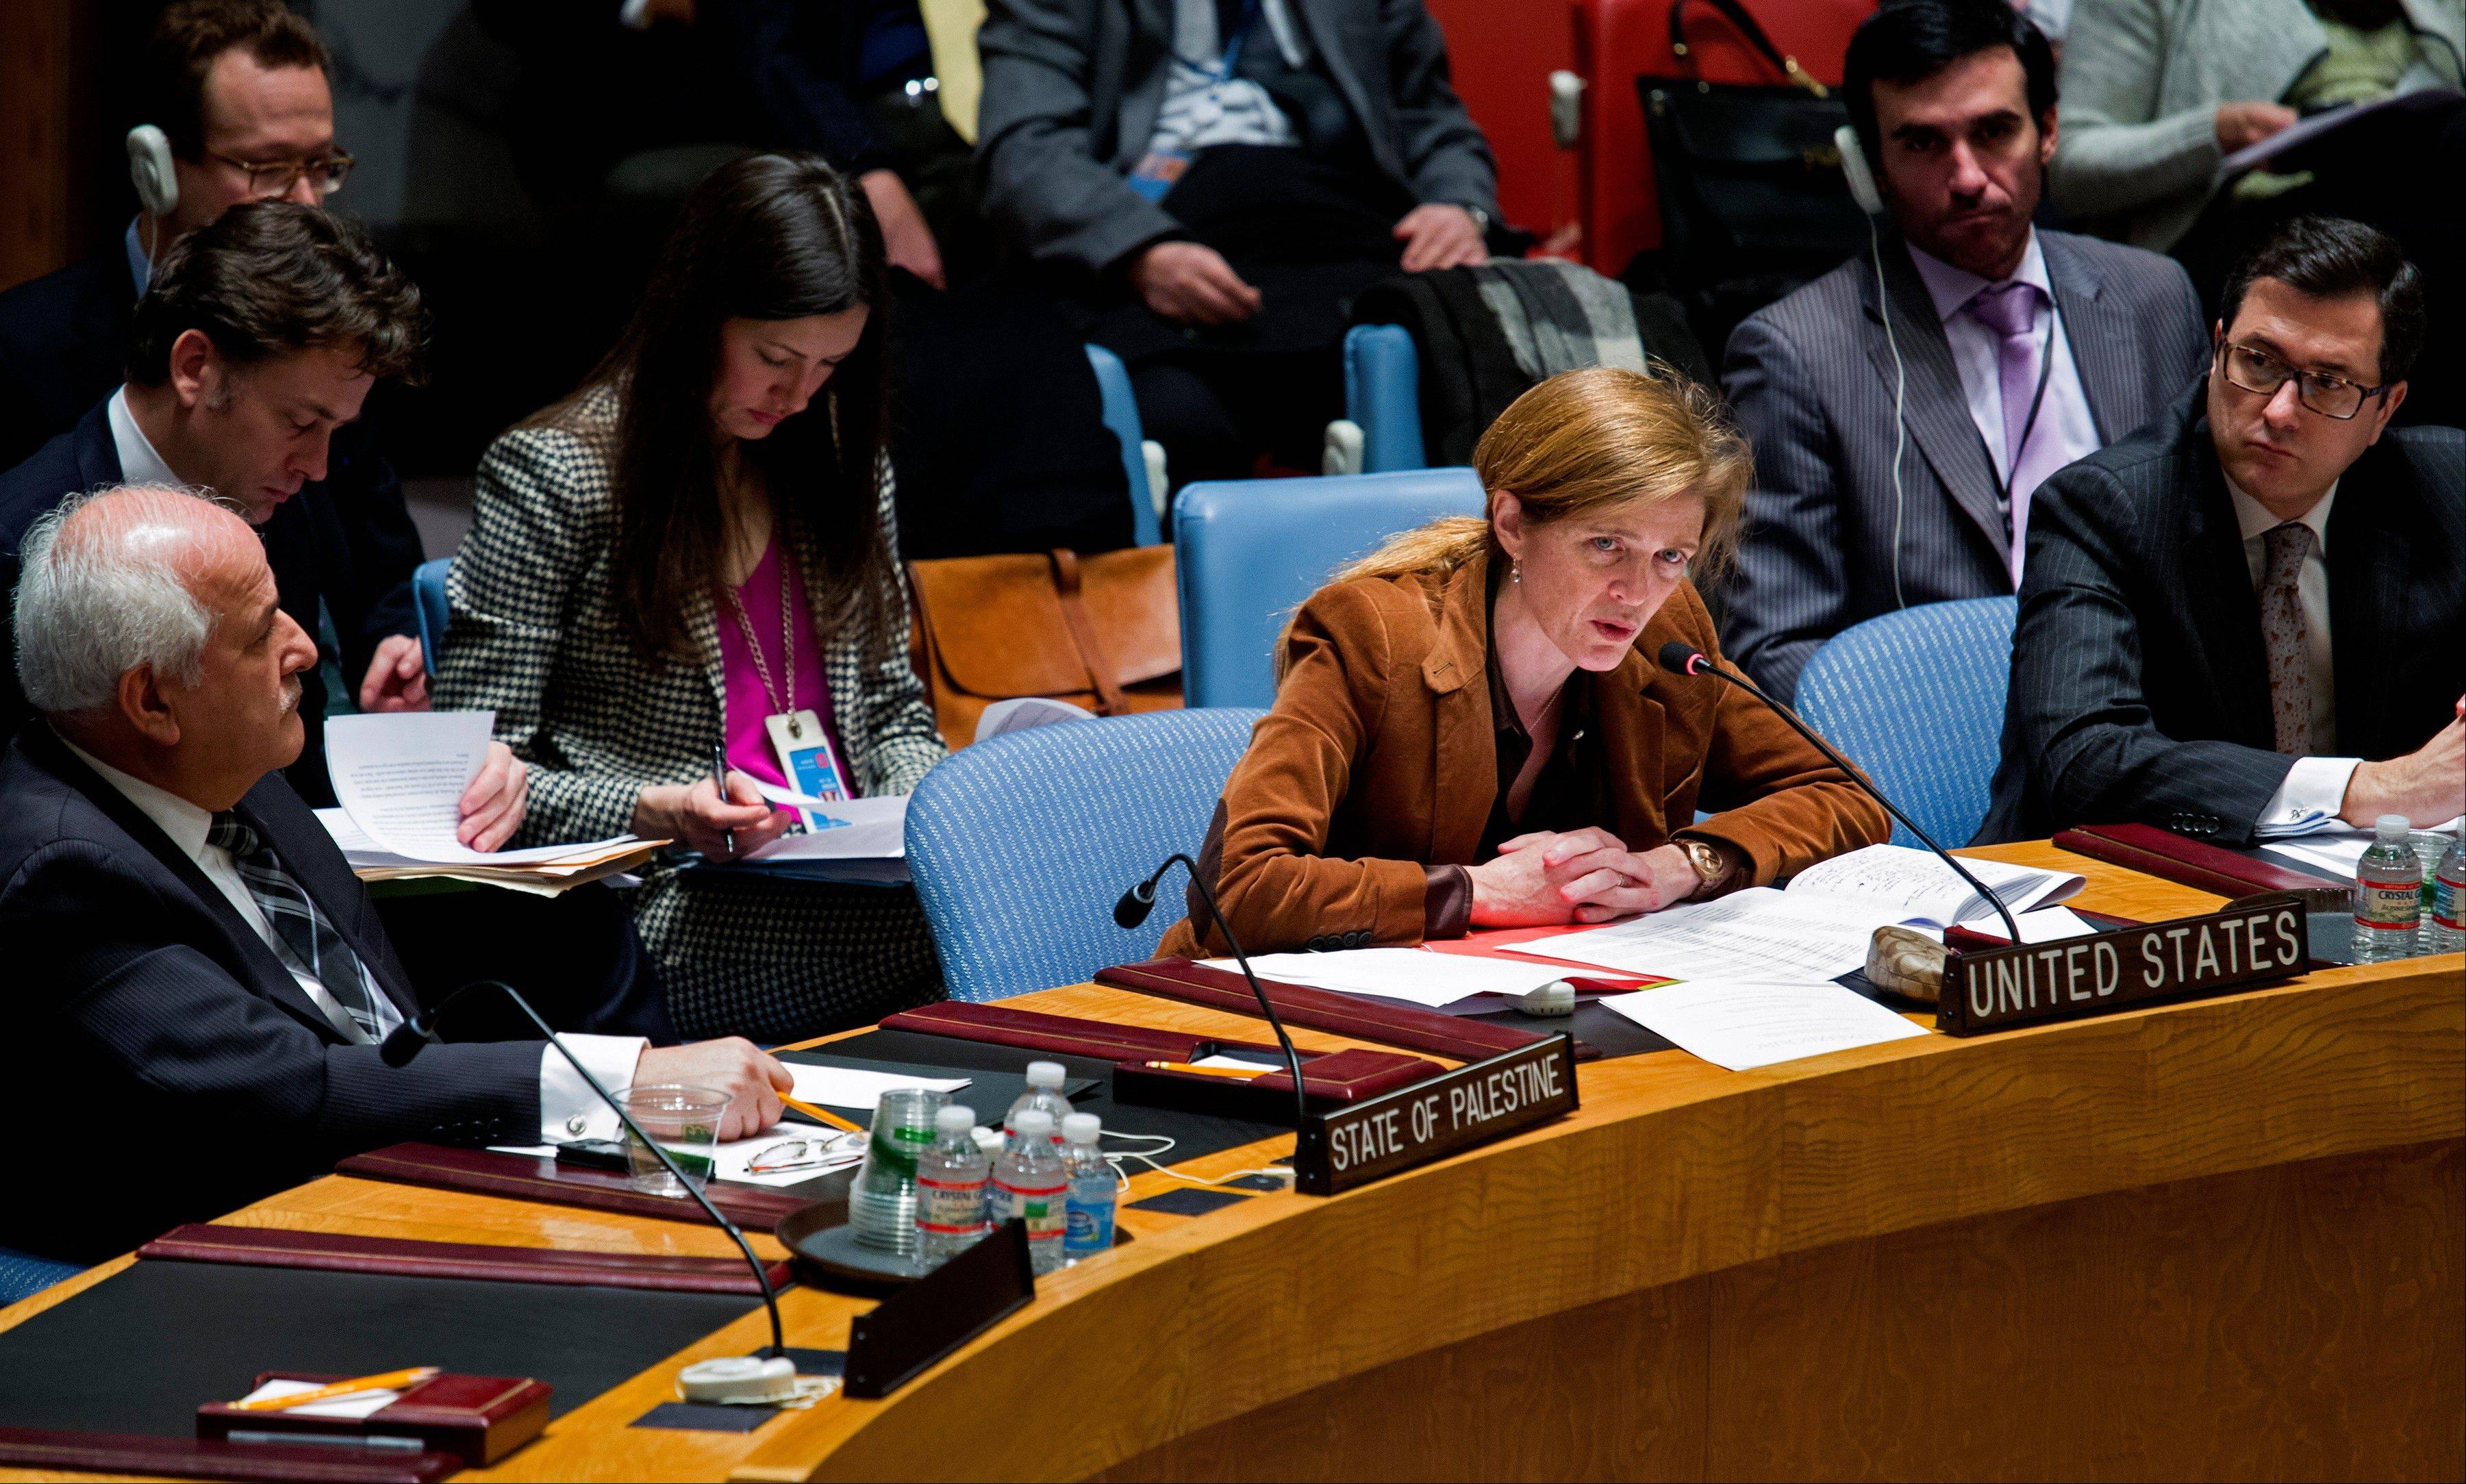 United Nations Ambassador from the Unites States Samantha Power addresses the Security Council at U.N. headquarters Monday on the situation in Syria and the Middle East.